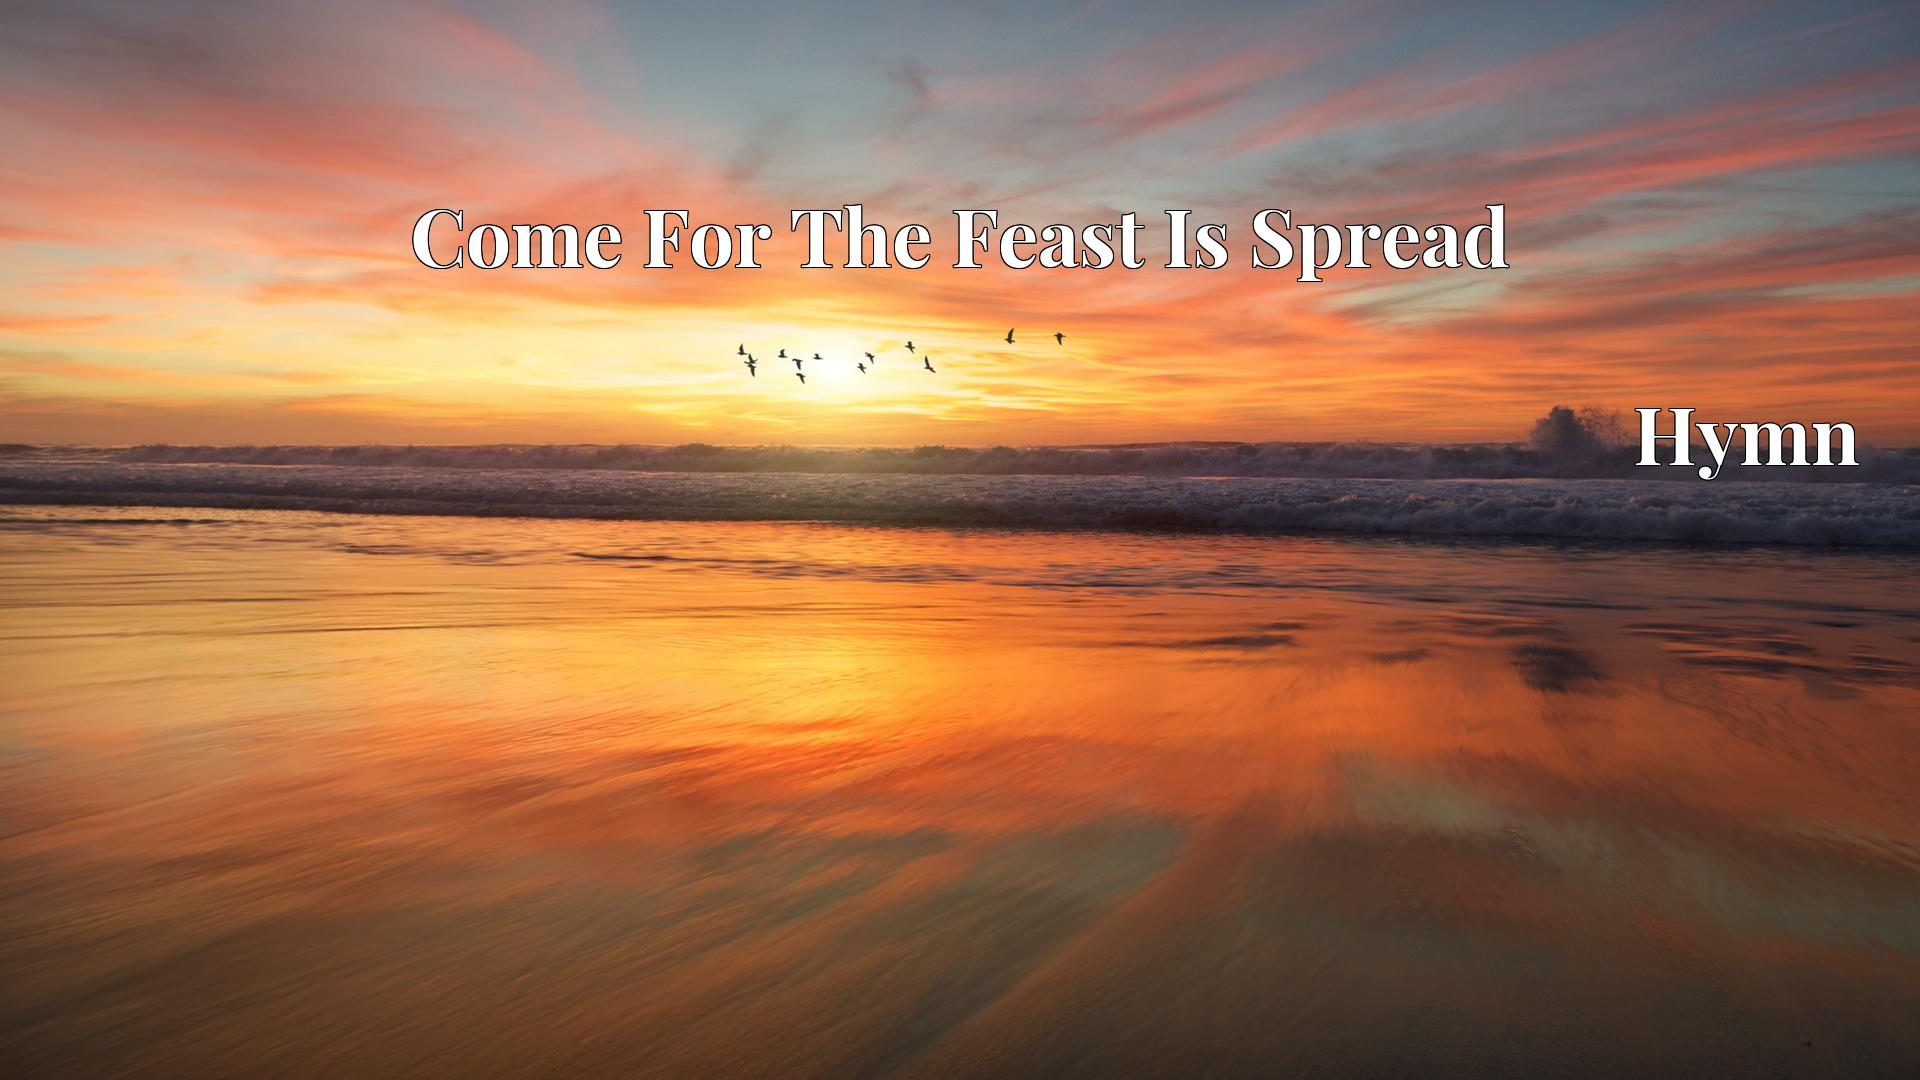 Come For The Feast Is Spread - Hymn